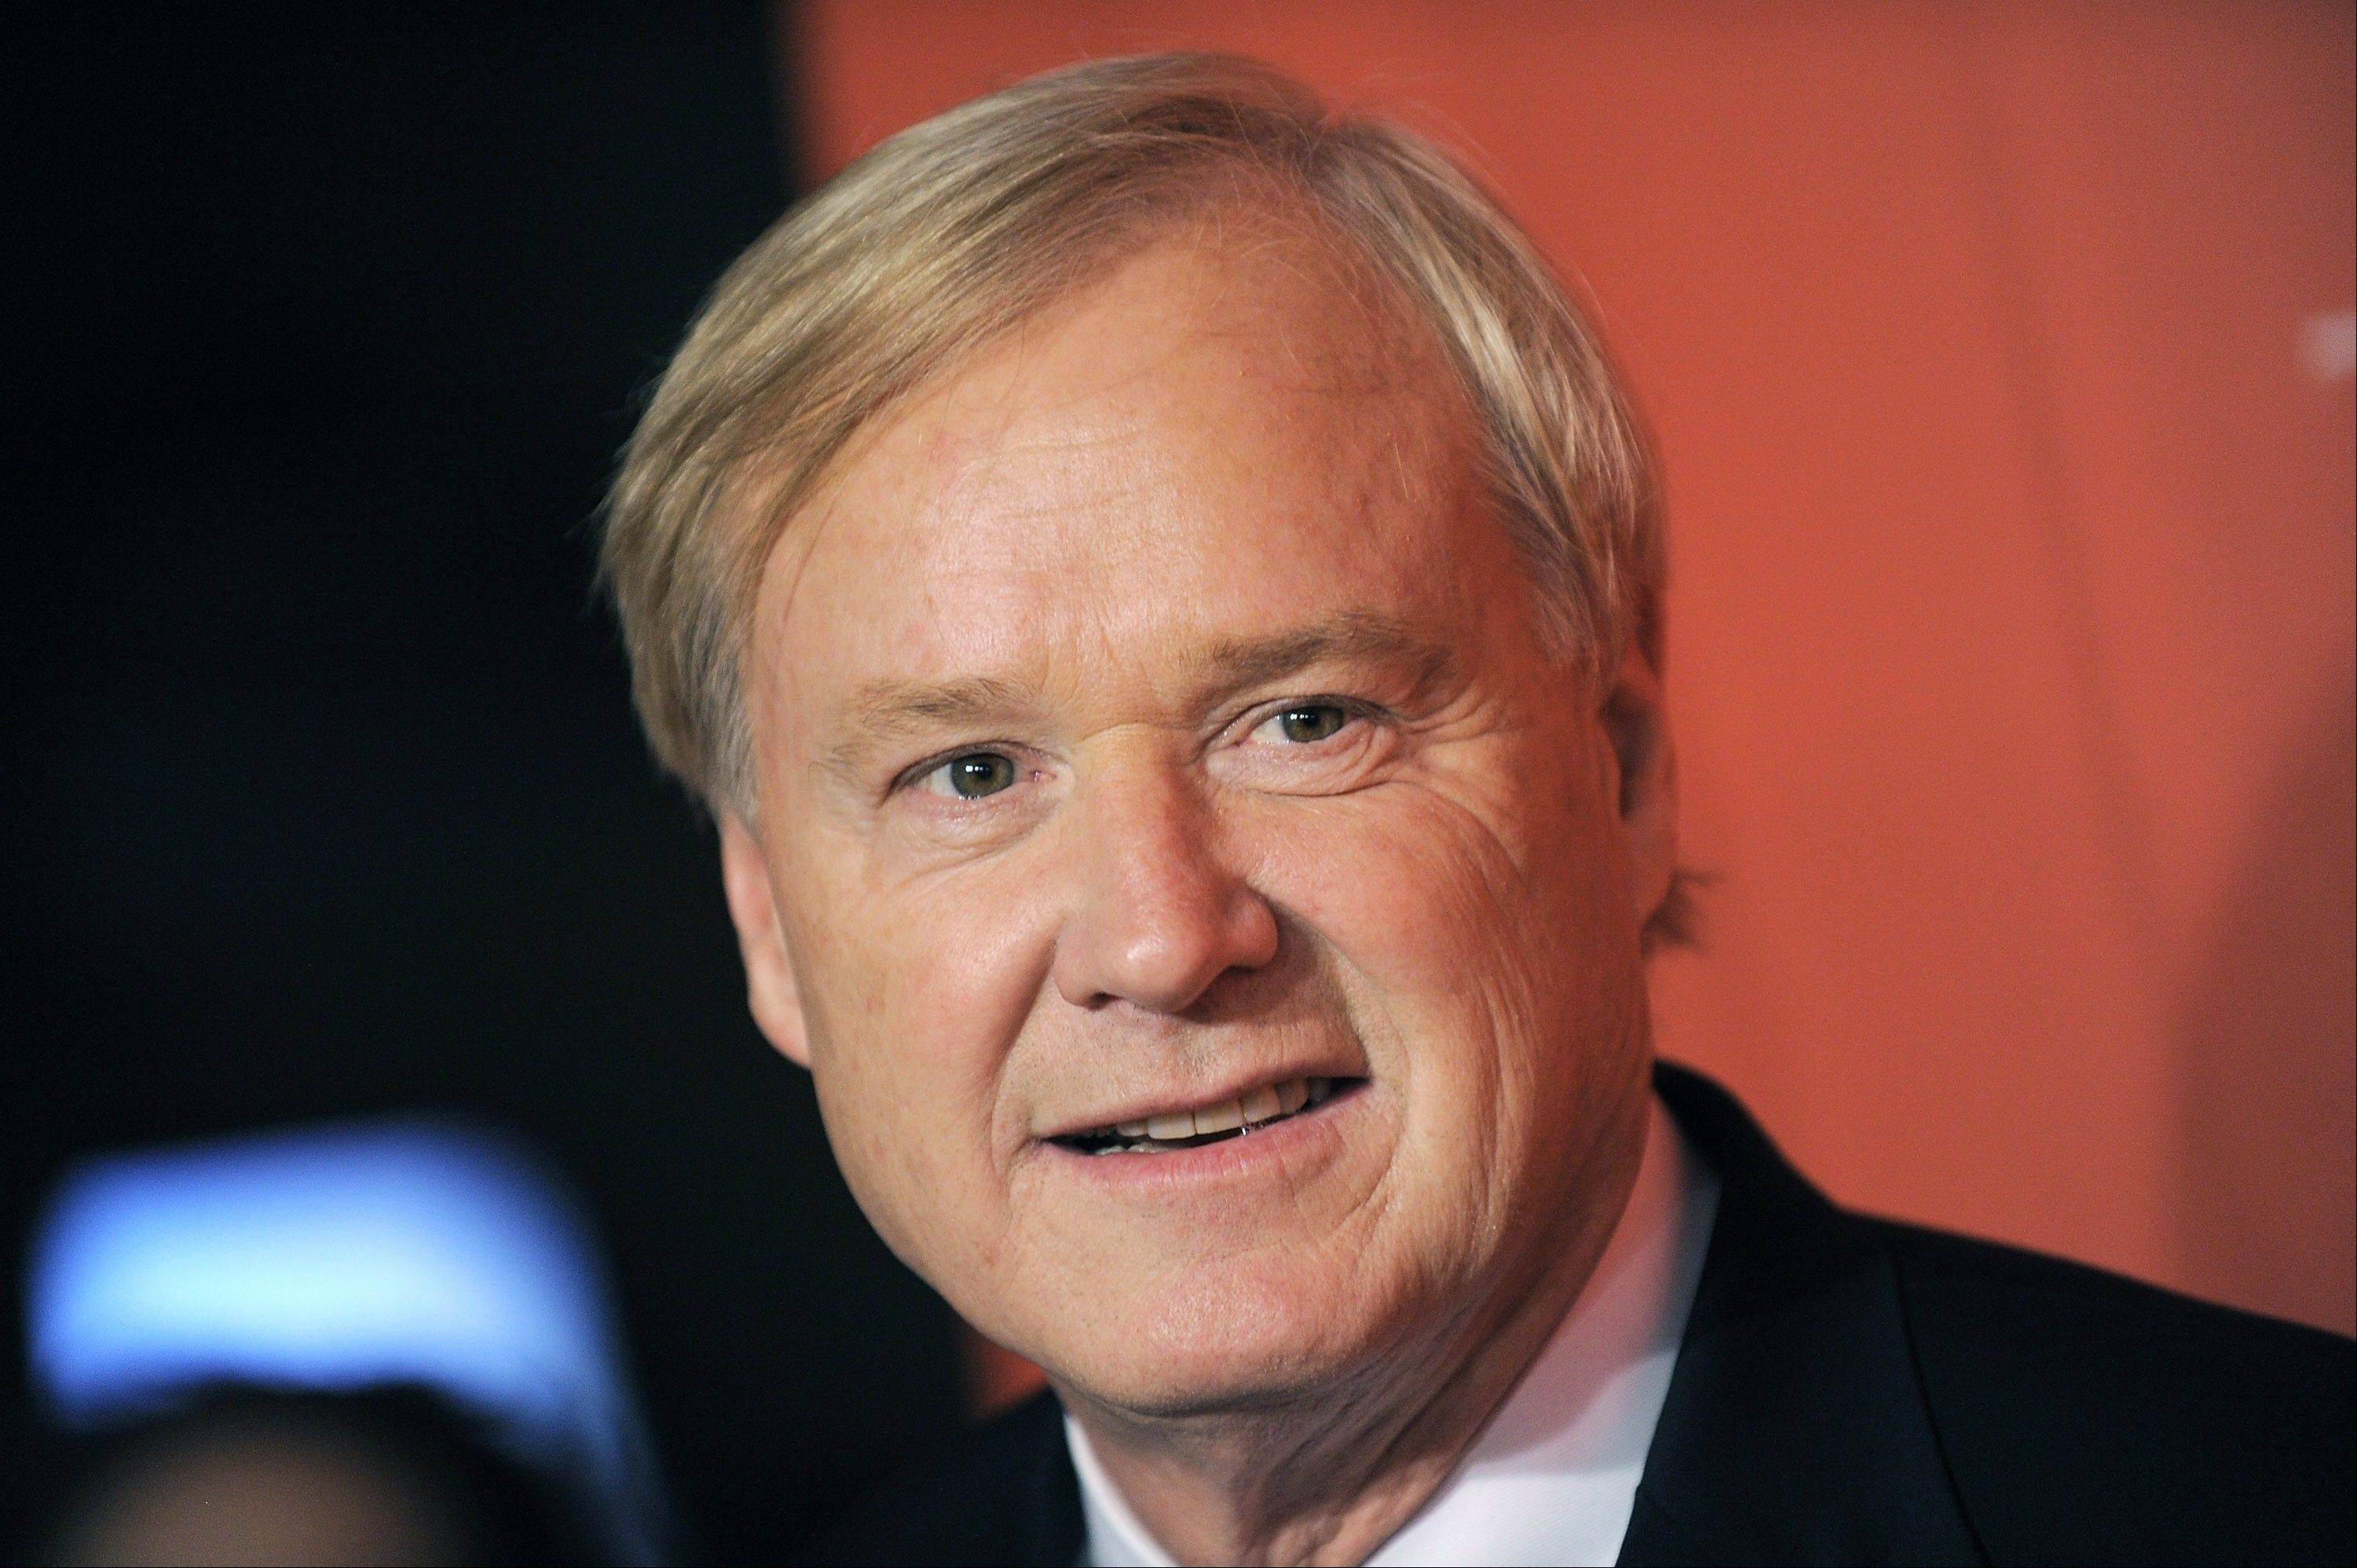 "In the cable television news world where provocation is prized, MSNBC's Chris Matthews took home the trophy from Tampa's Republican national convention as most over-the-top pundit. Matthews engaged in a bitter verbal brawl on ""Morning Joe"" with Republican National Committee Chairman Reince Priebus that upset the show's hosts, accused the GOP of conducting a campaign of race-baiting and suggested Republican presidential candidate Mitt Romney is not proud of his record in public life."